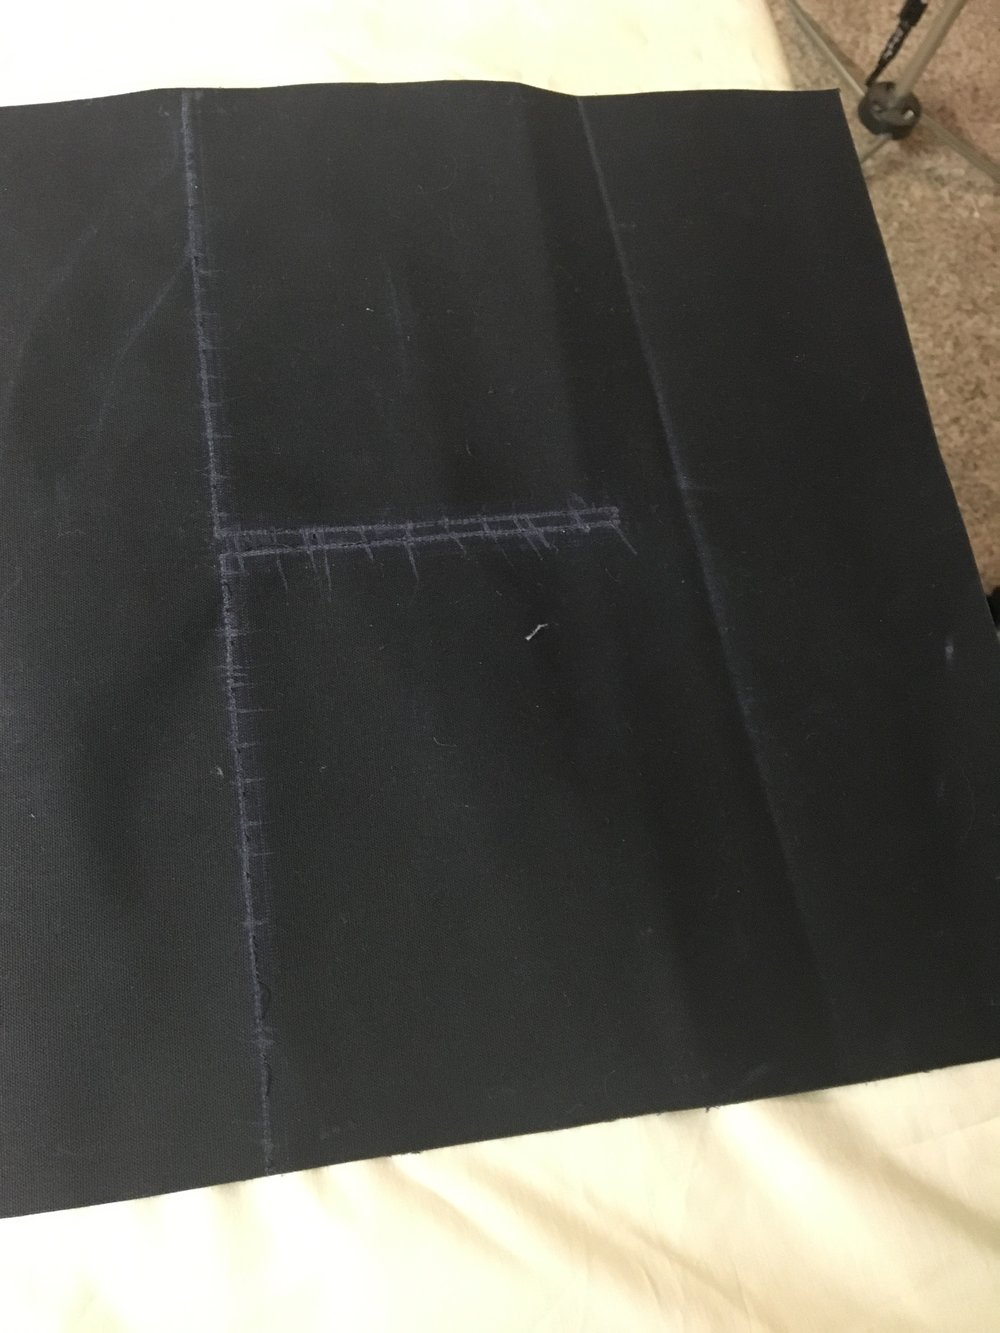 Here are the marks left by my silly late-night sewing mistake